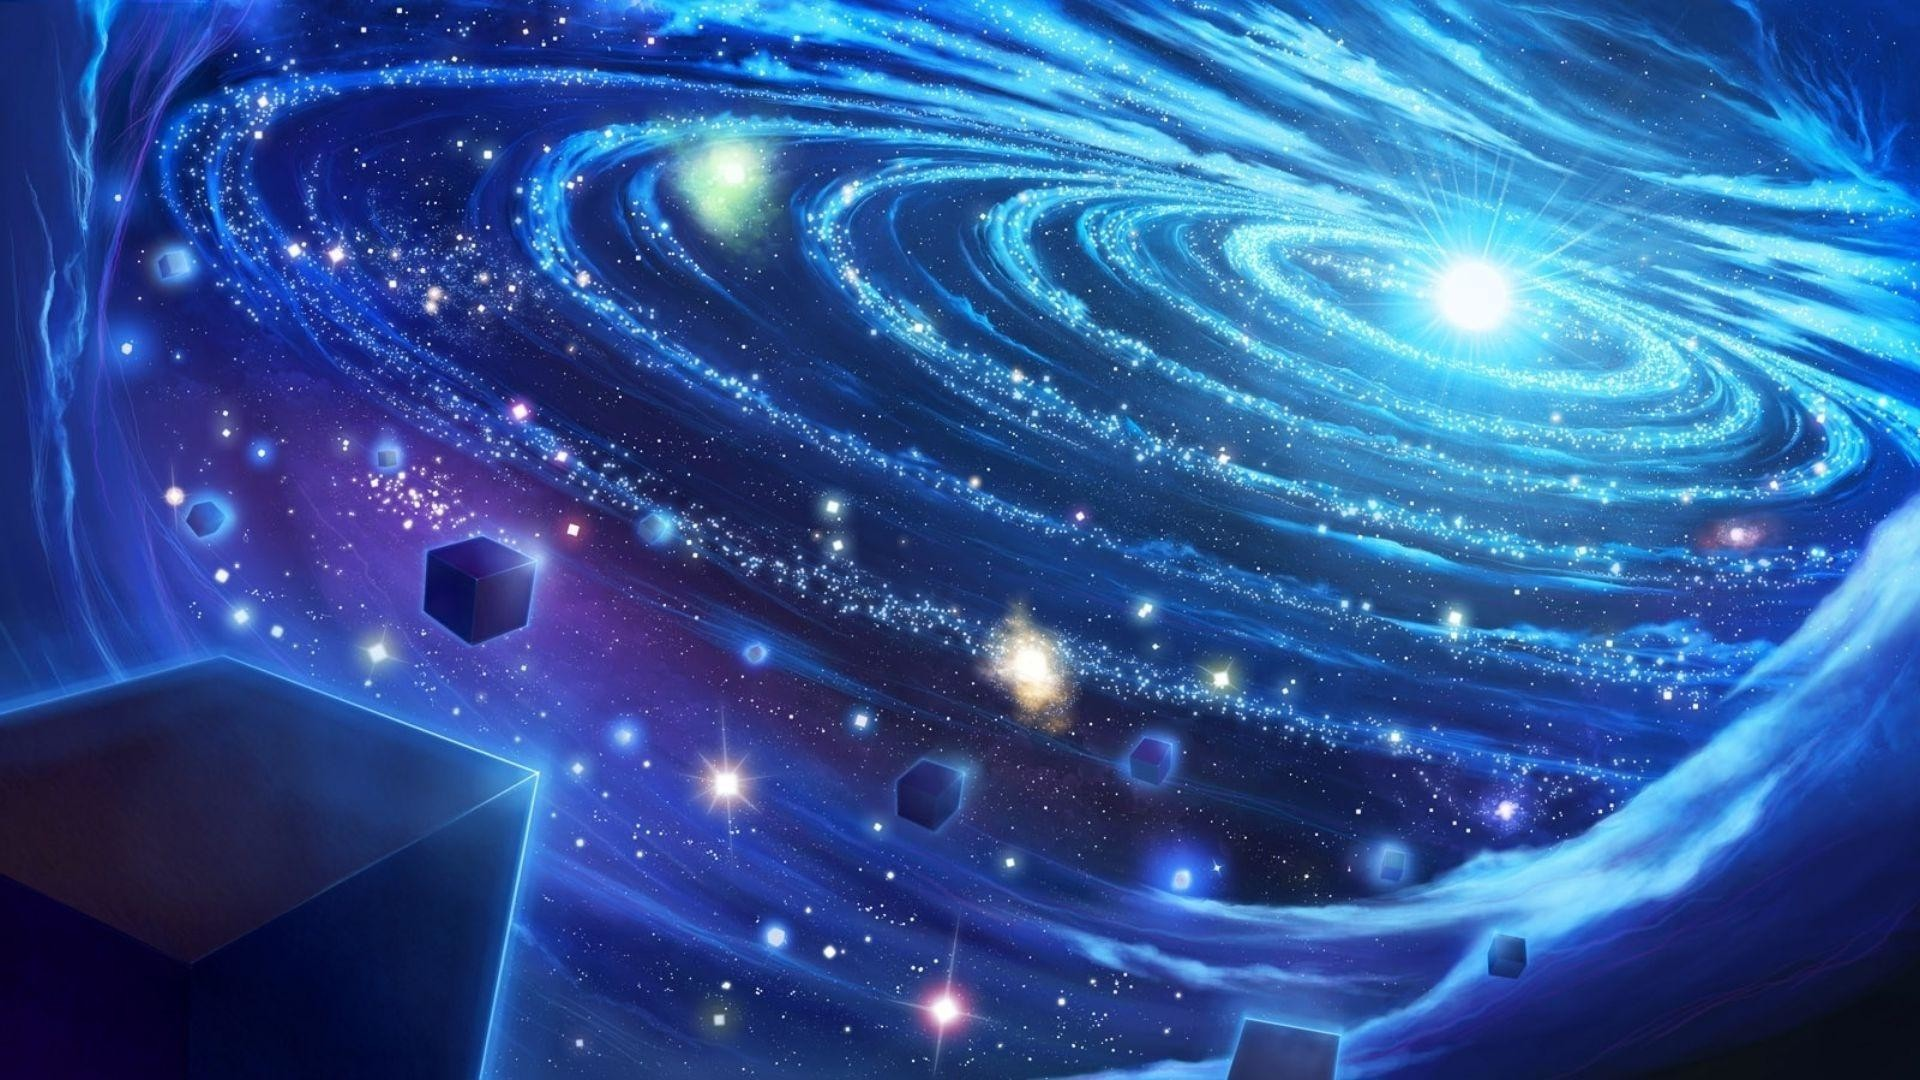 Free download 75 Blue Galaxy Wallpapers on WallpaperPlay